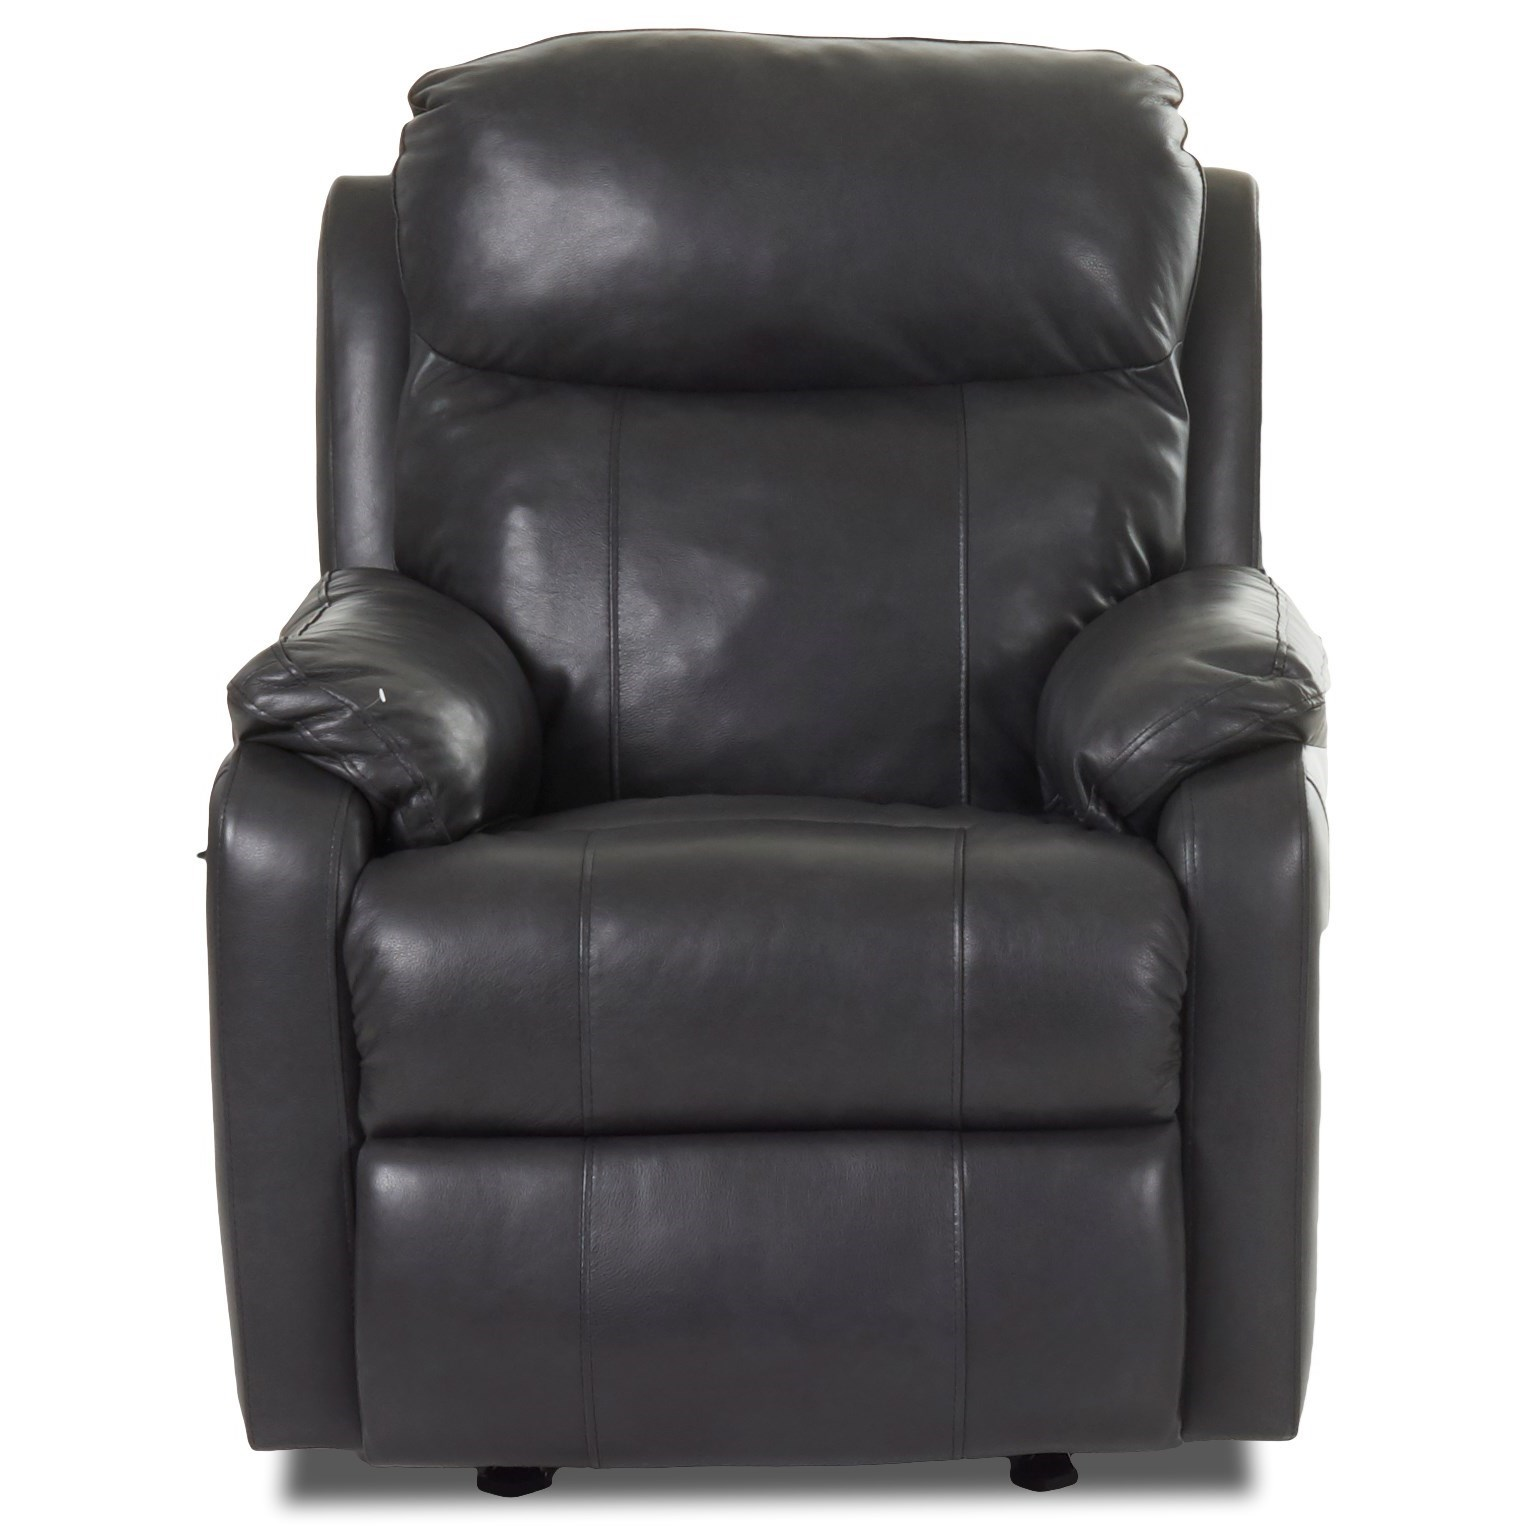 Casual Power Rocking Reclining Chair with USB Charging Port